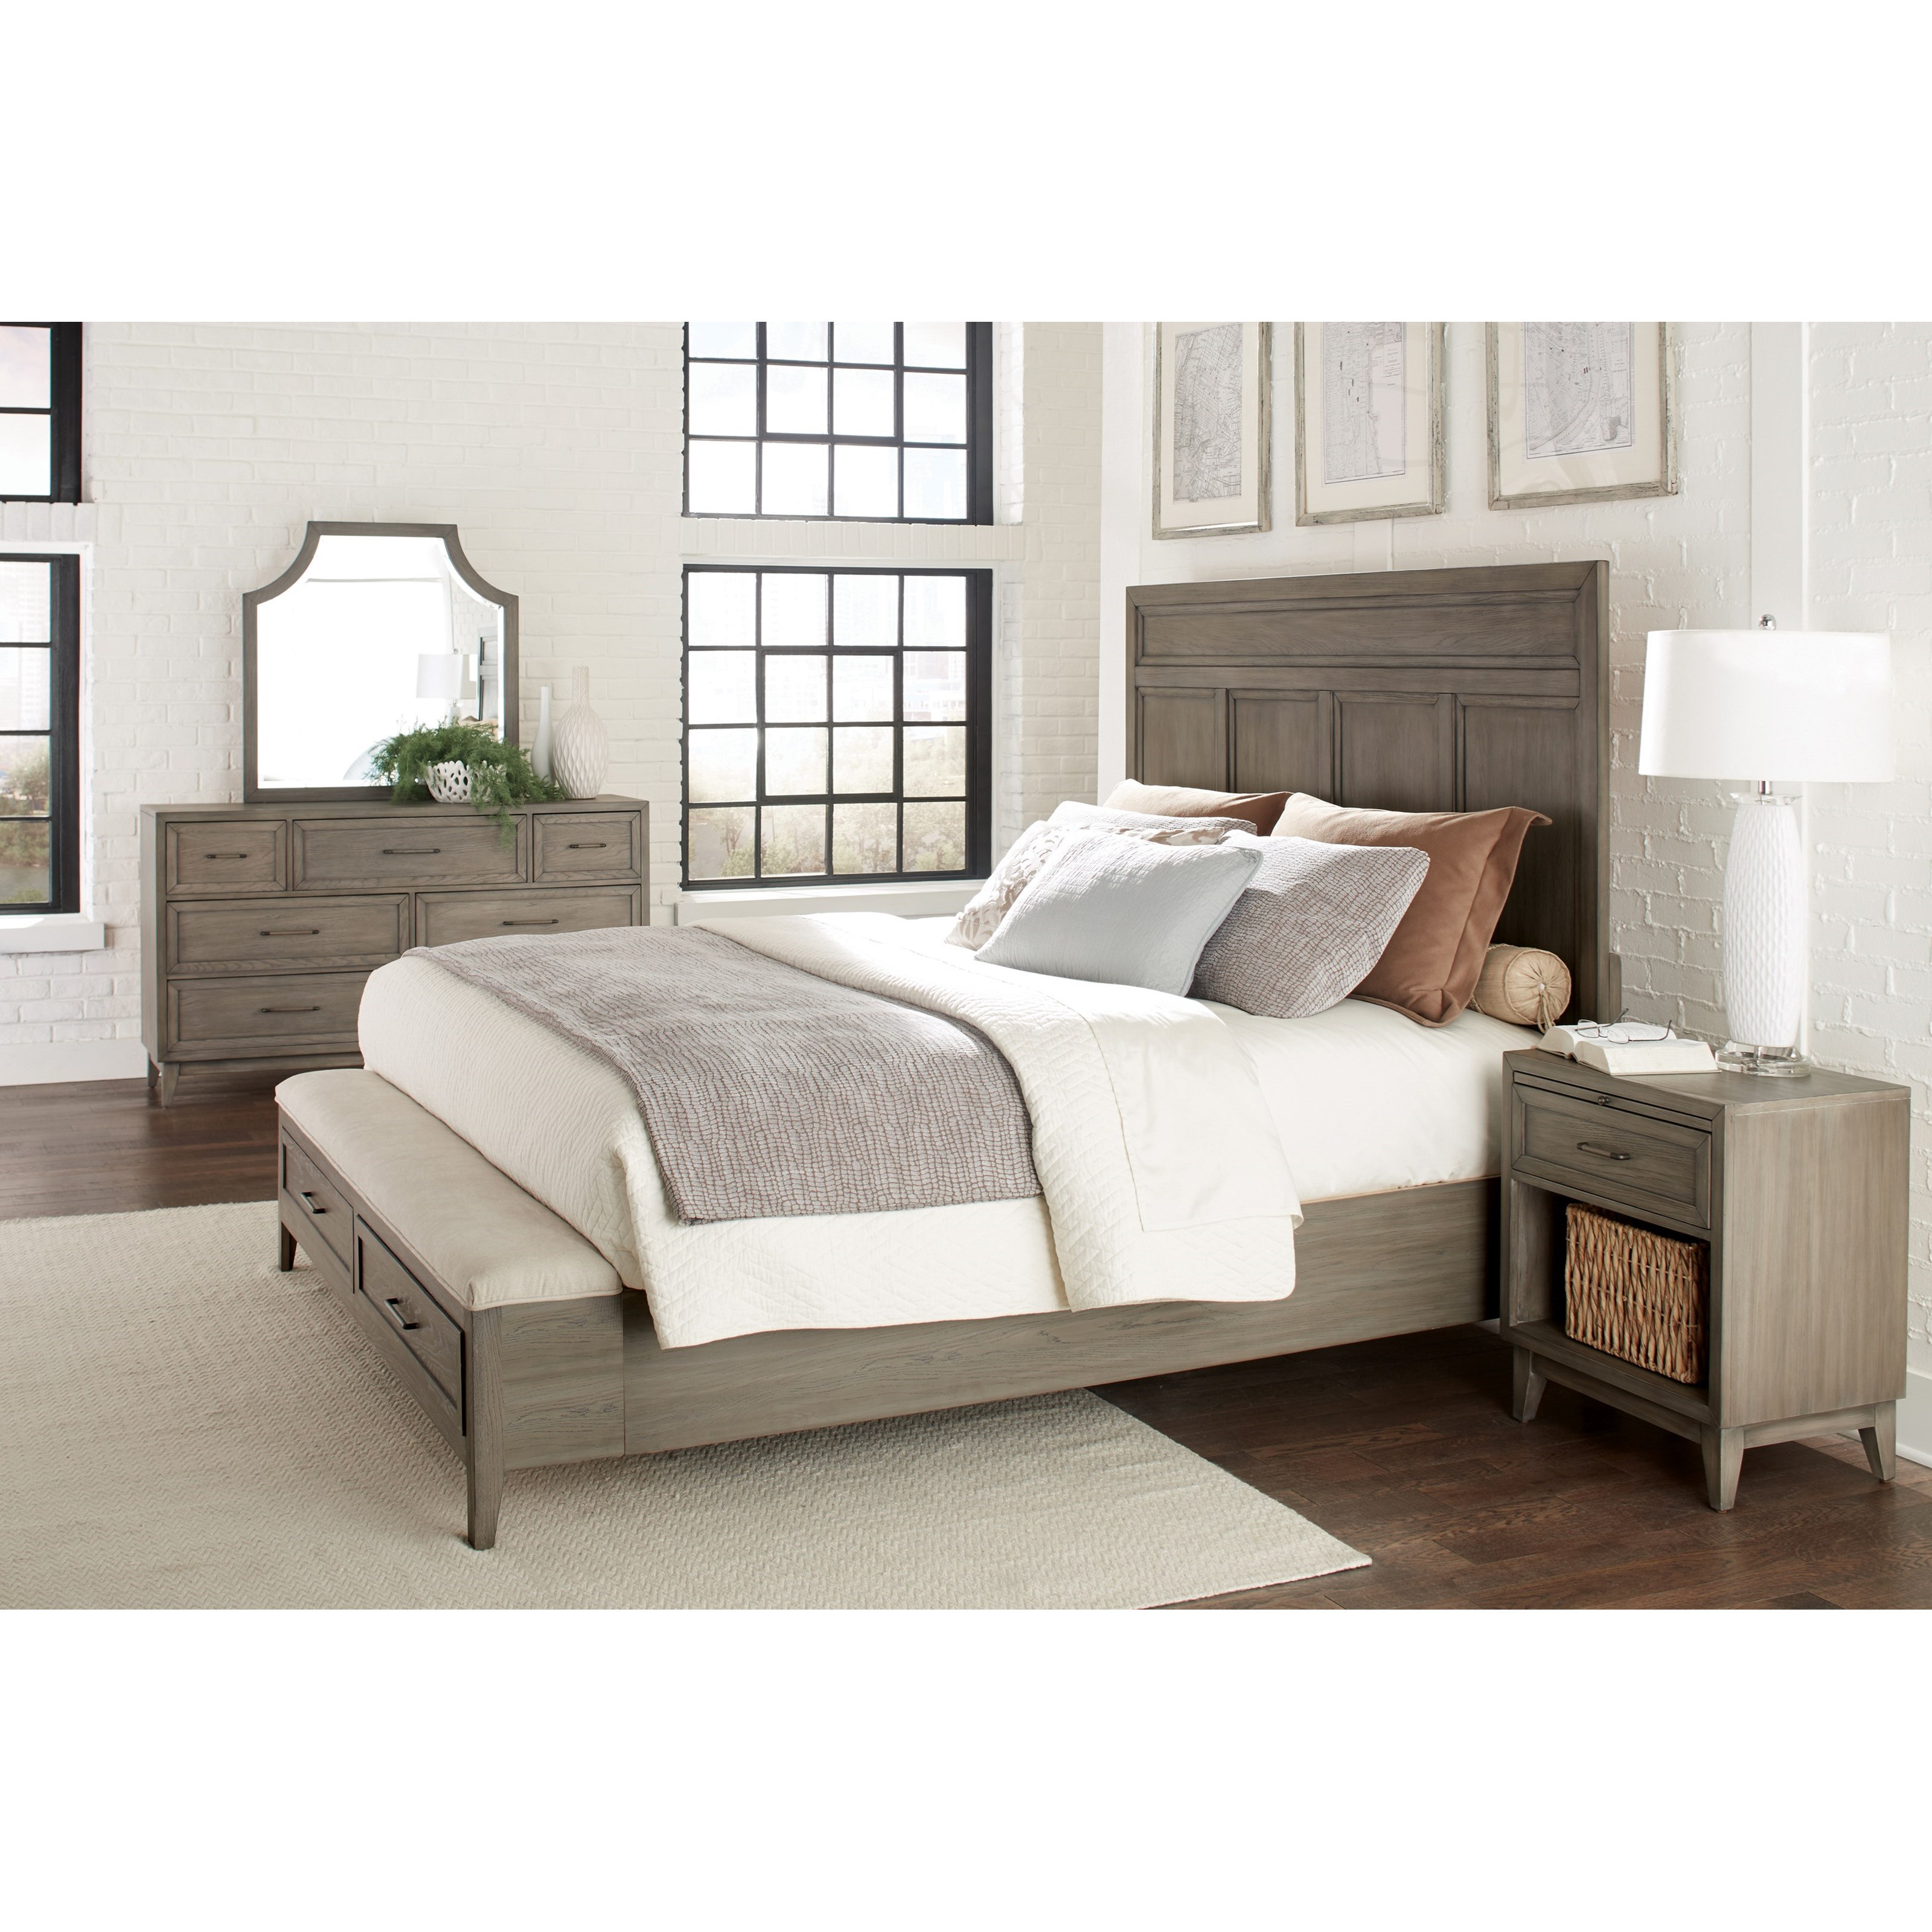 Vogue Queen Bedroom Group 5 by Riverside Furniture at Zak's Home